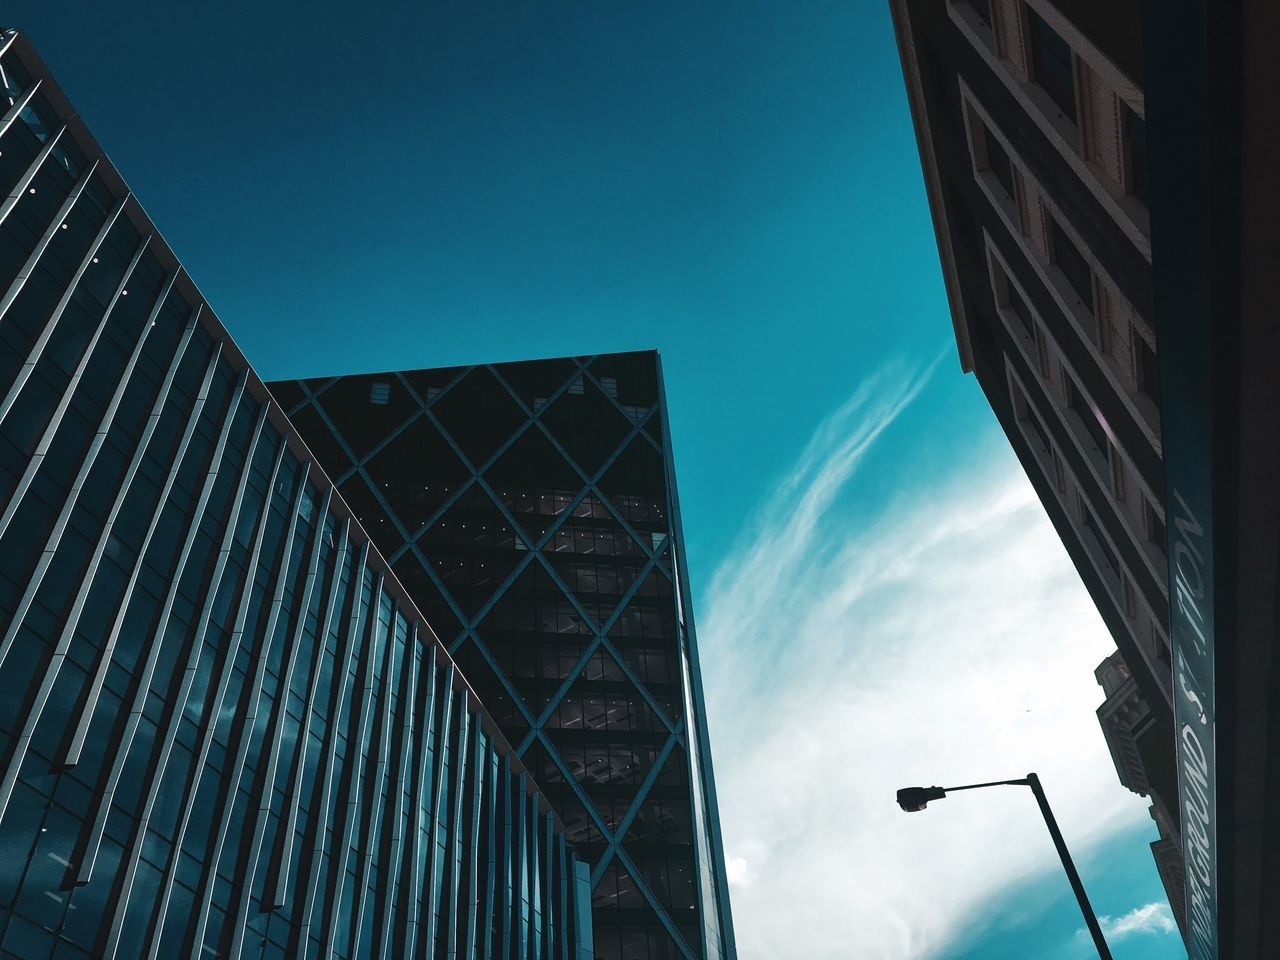 built structure, architecture, building exterior, sky, low angle view, building, city, no people, nature, cloud - sky, modern, blue, day, office, outdoors, glass - material, office building exterior, window, reflection, business, skyscraper